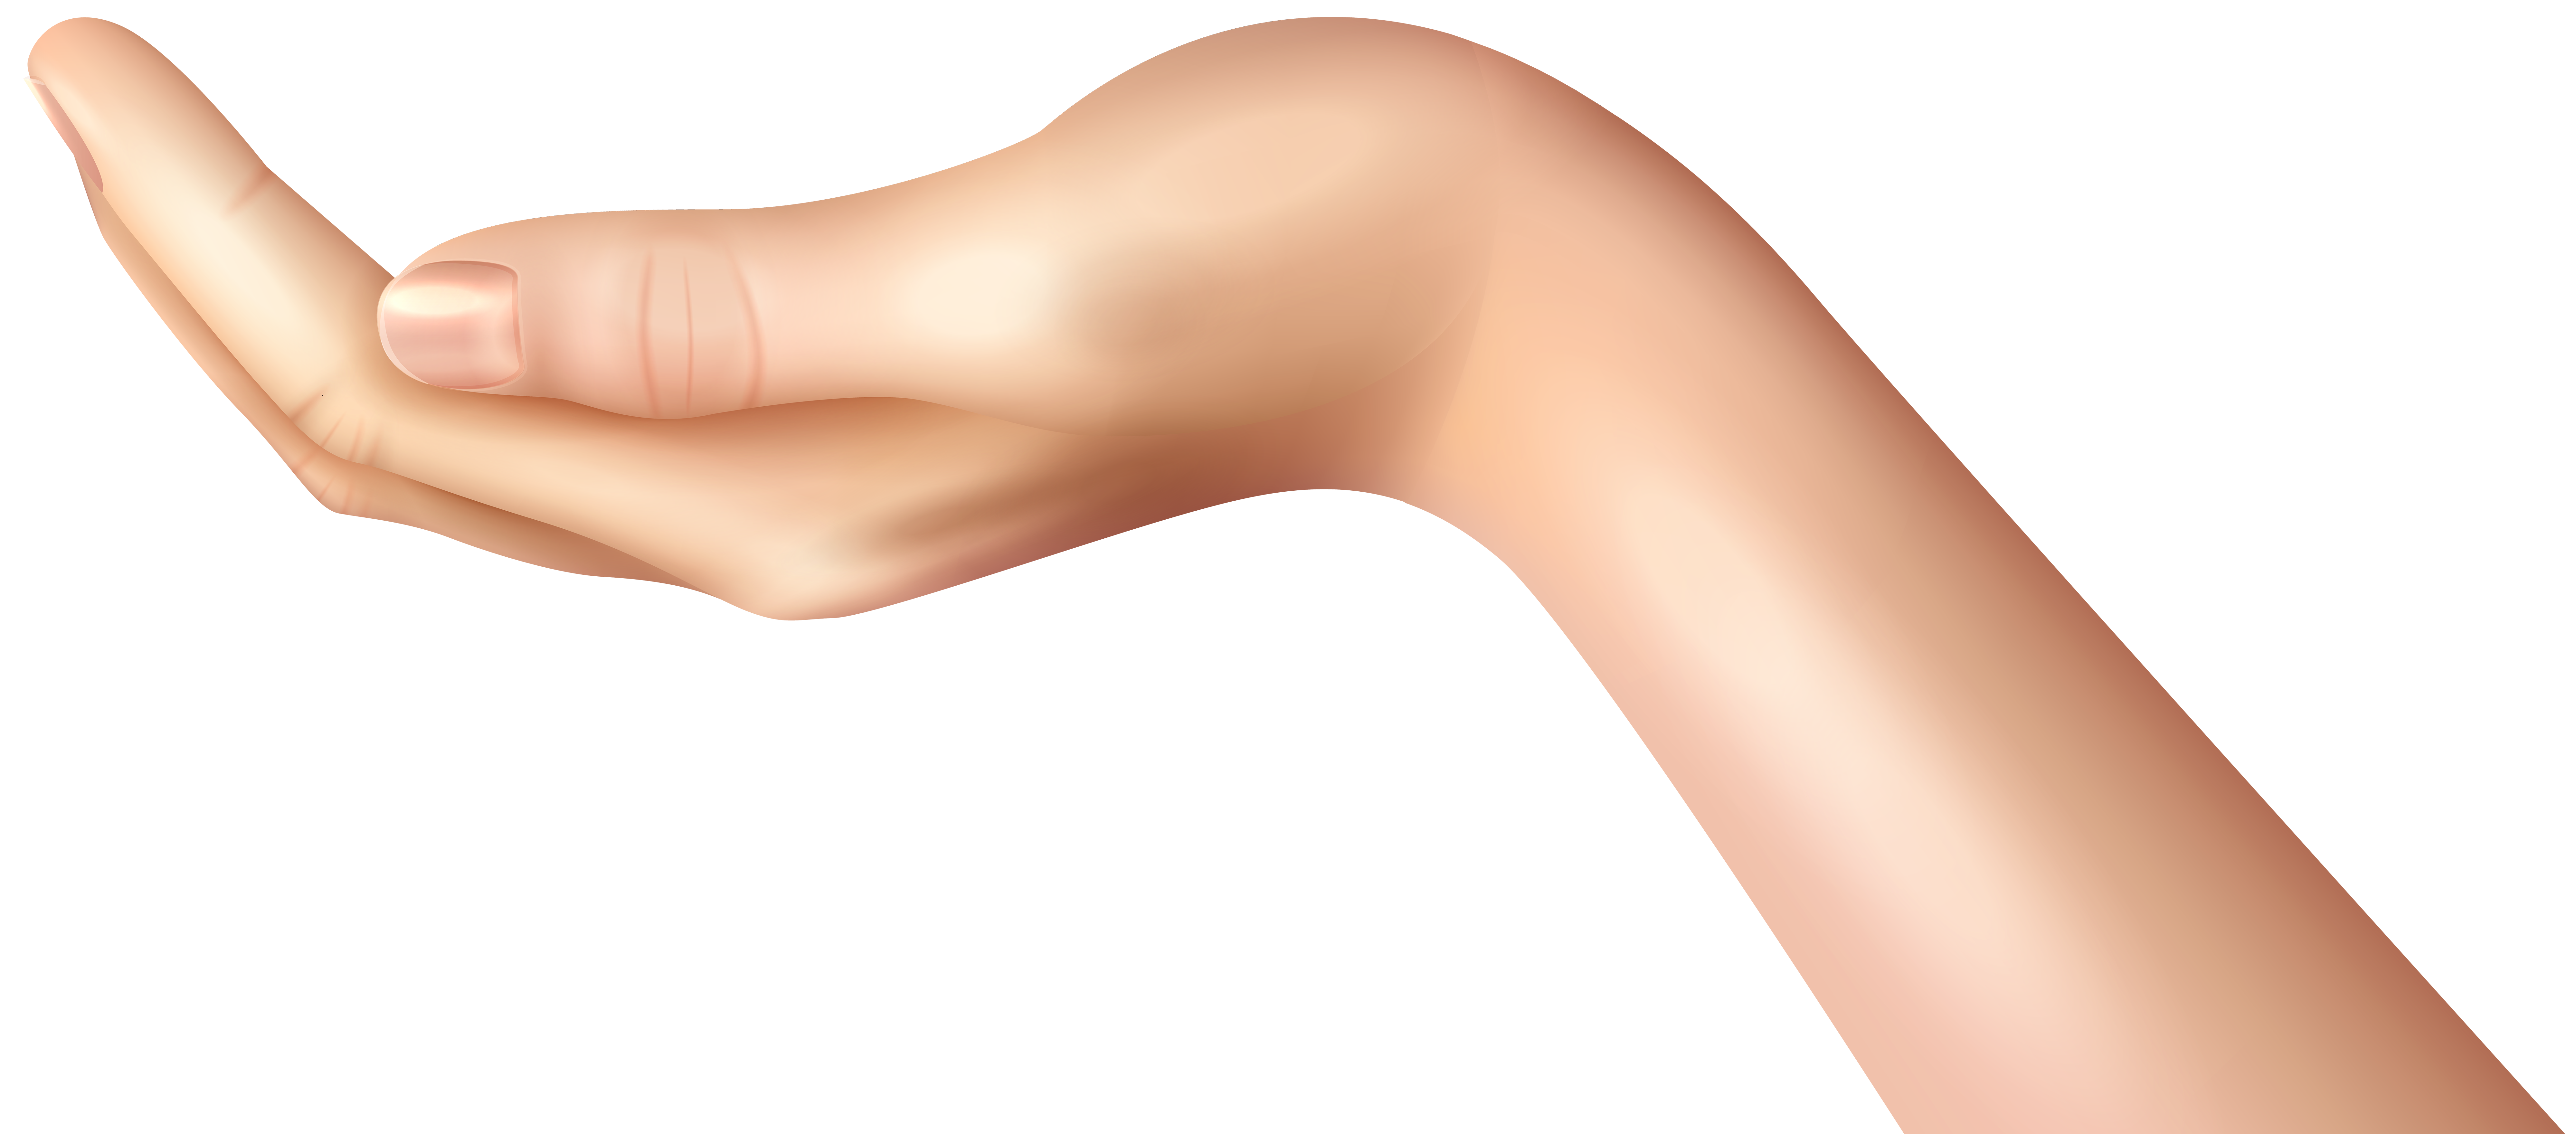 Woman gesture png clip. Hand clipart hand holding